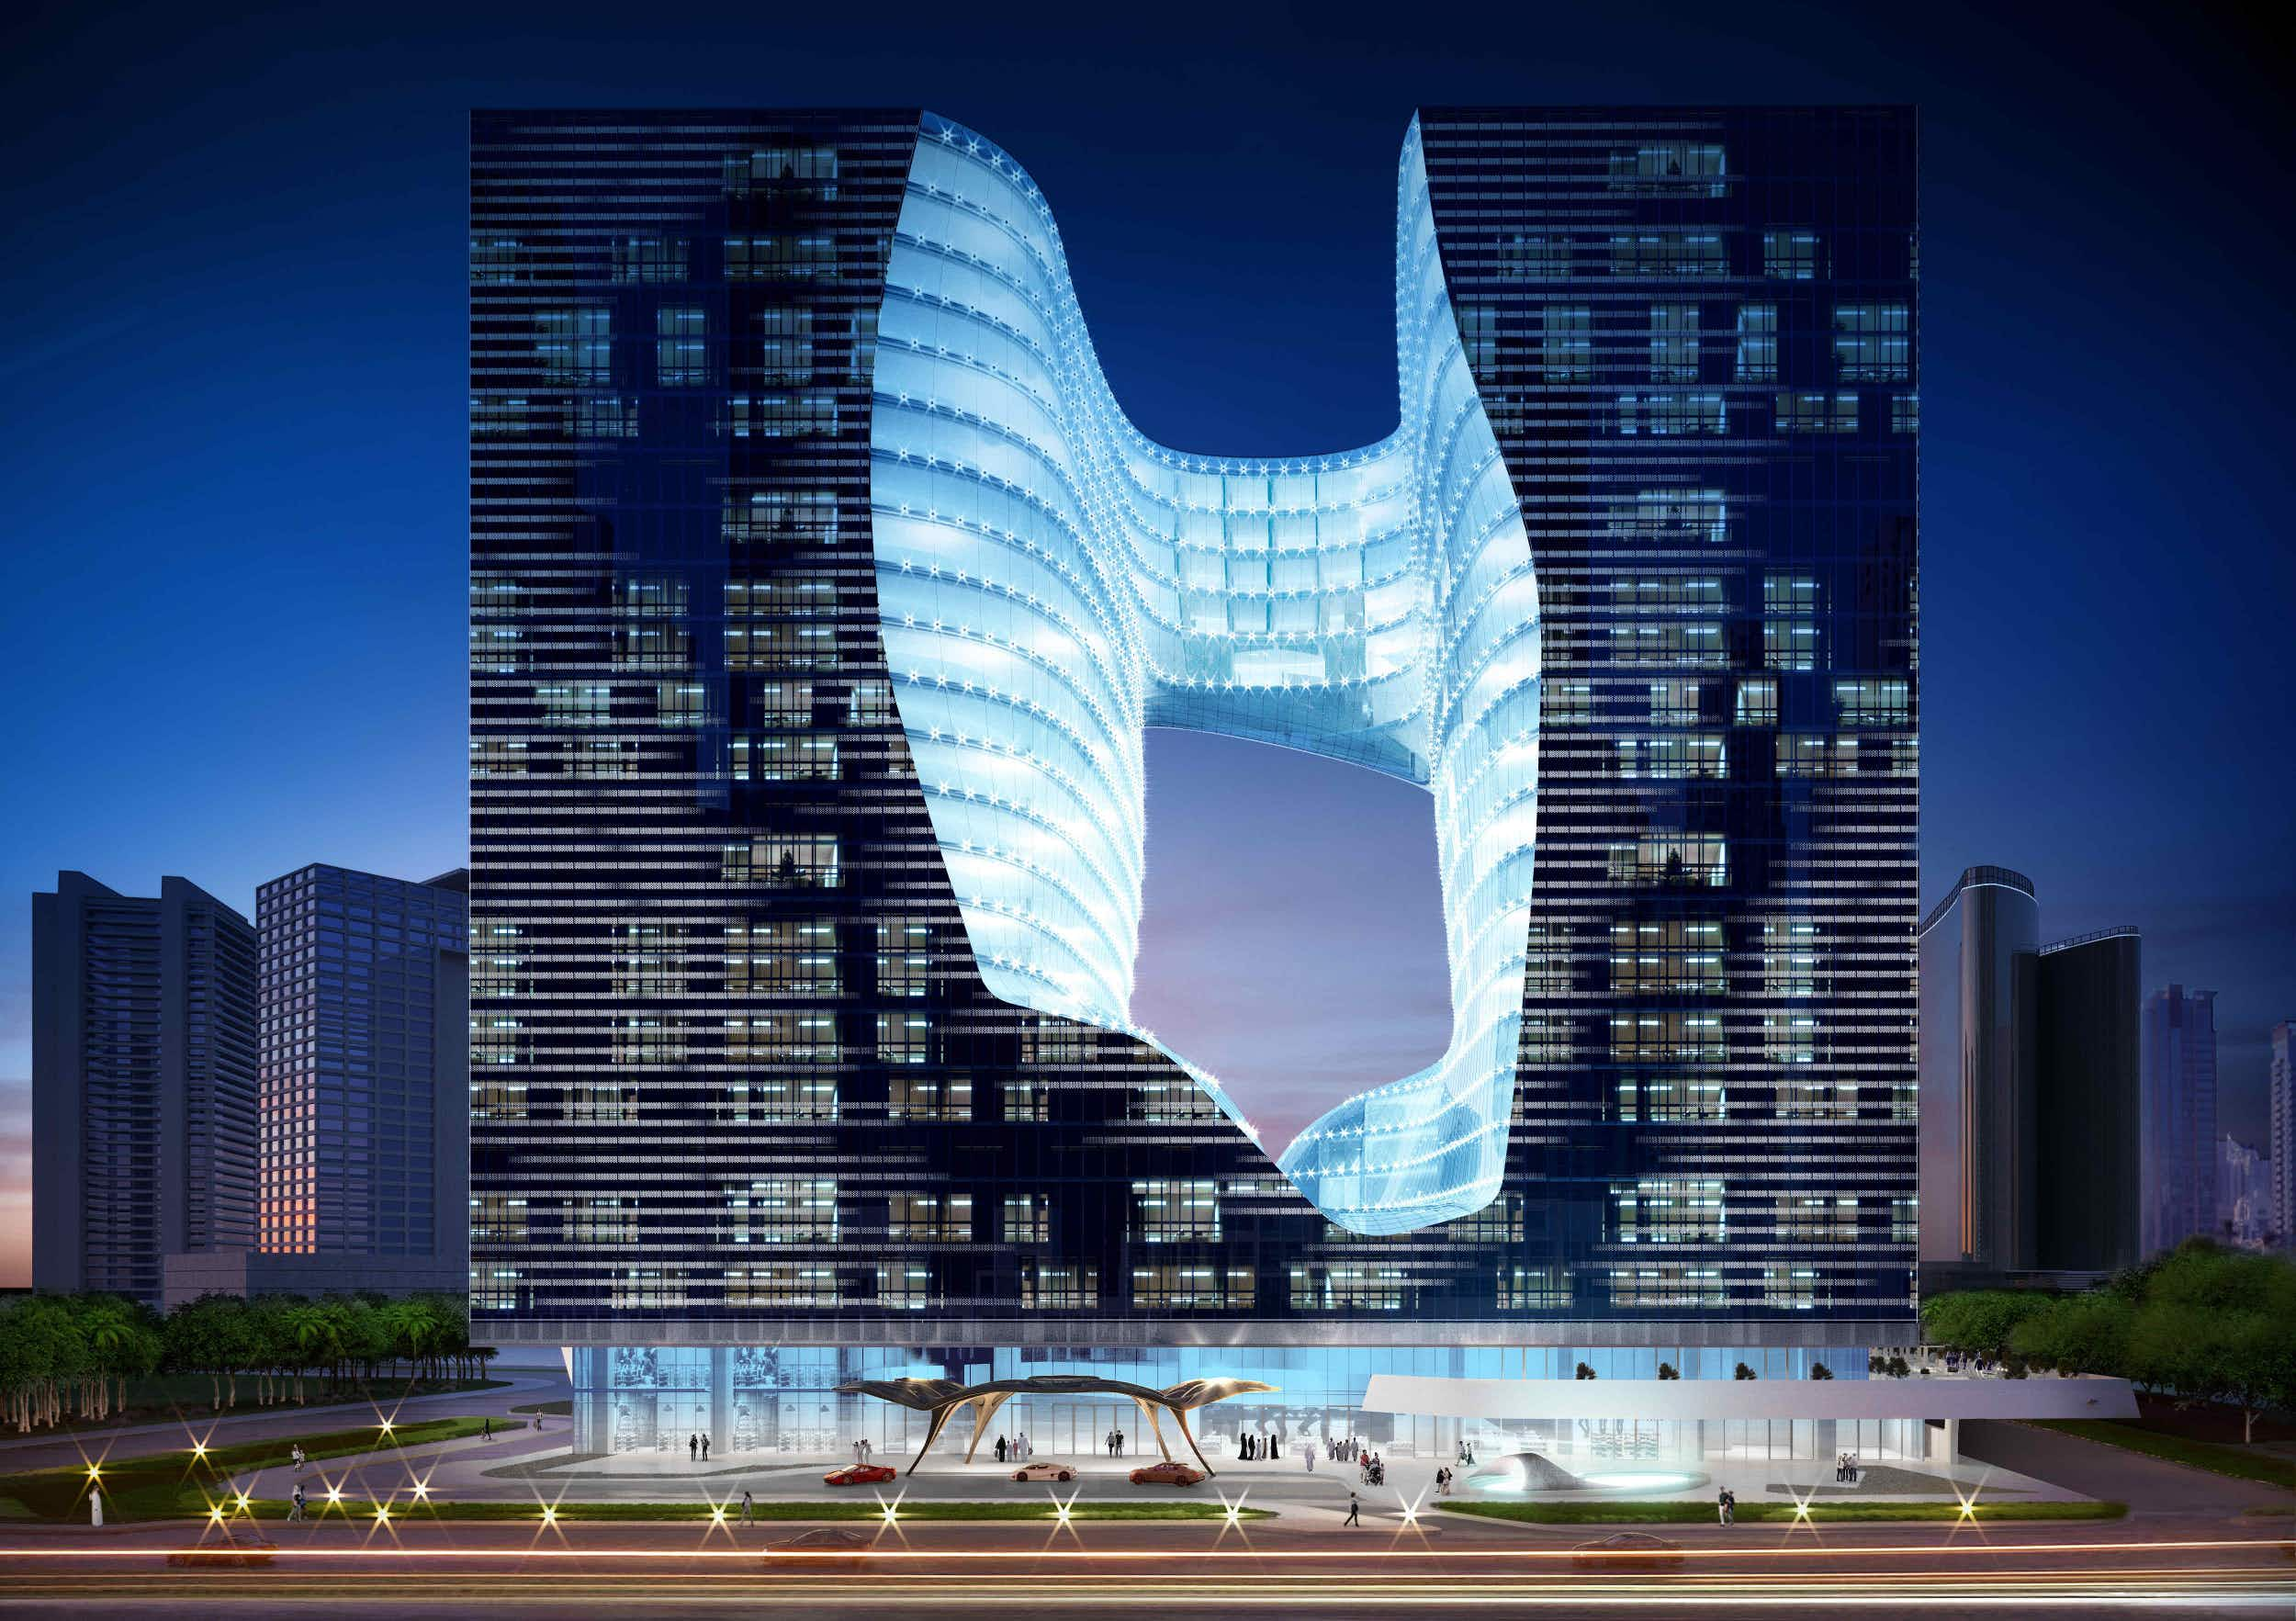 Hotel designed by the late architect Zaha Hadid to open in Dubai